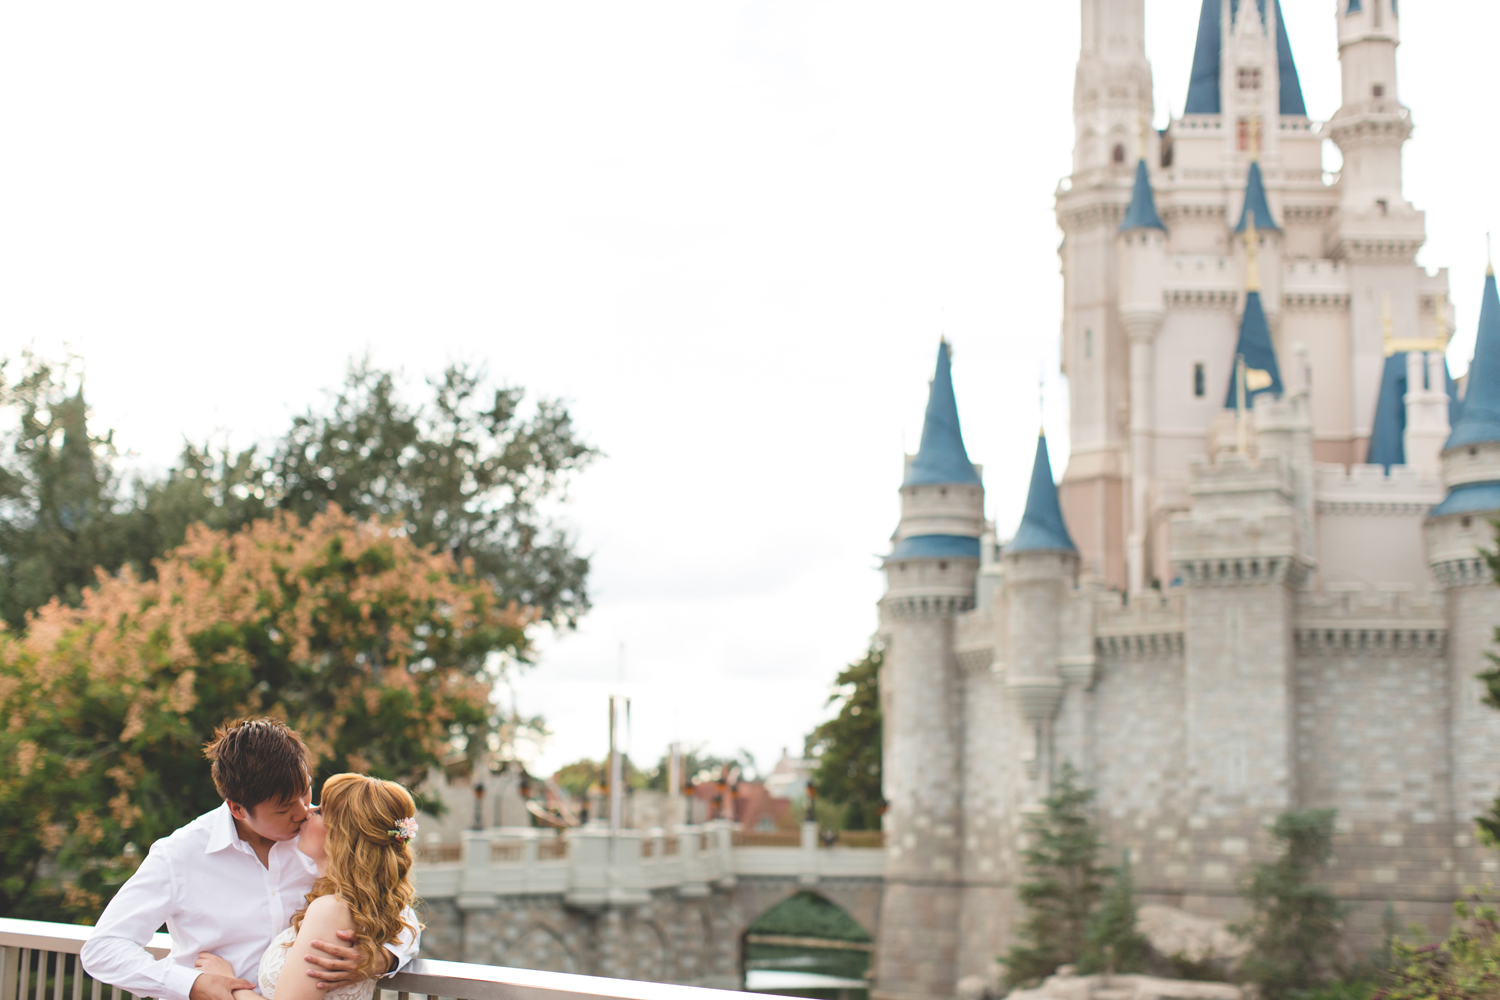 Disney Honeymoon session - Disney Engagement Photos - Disney Wedding Photographer - Destination Orlando Wedding Photographer - Jaime DiOrio (13).jpg